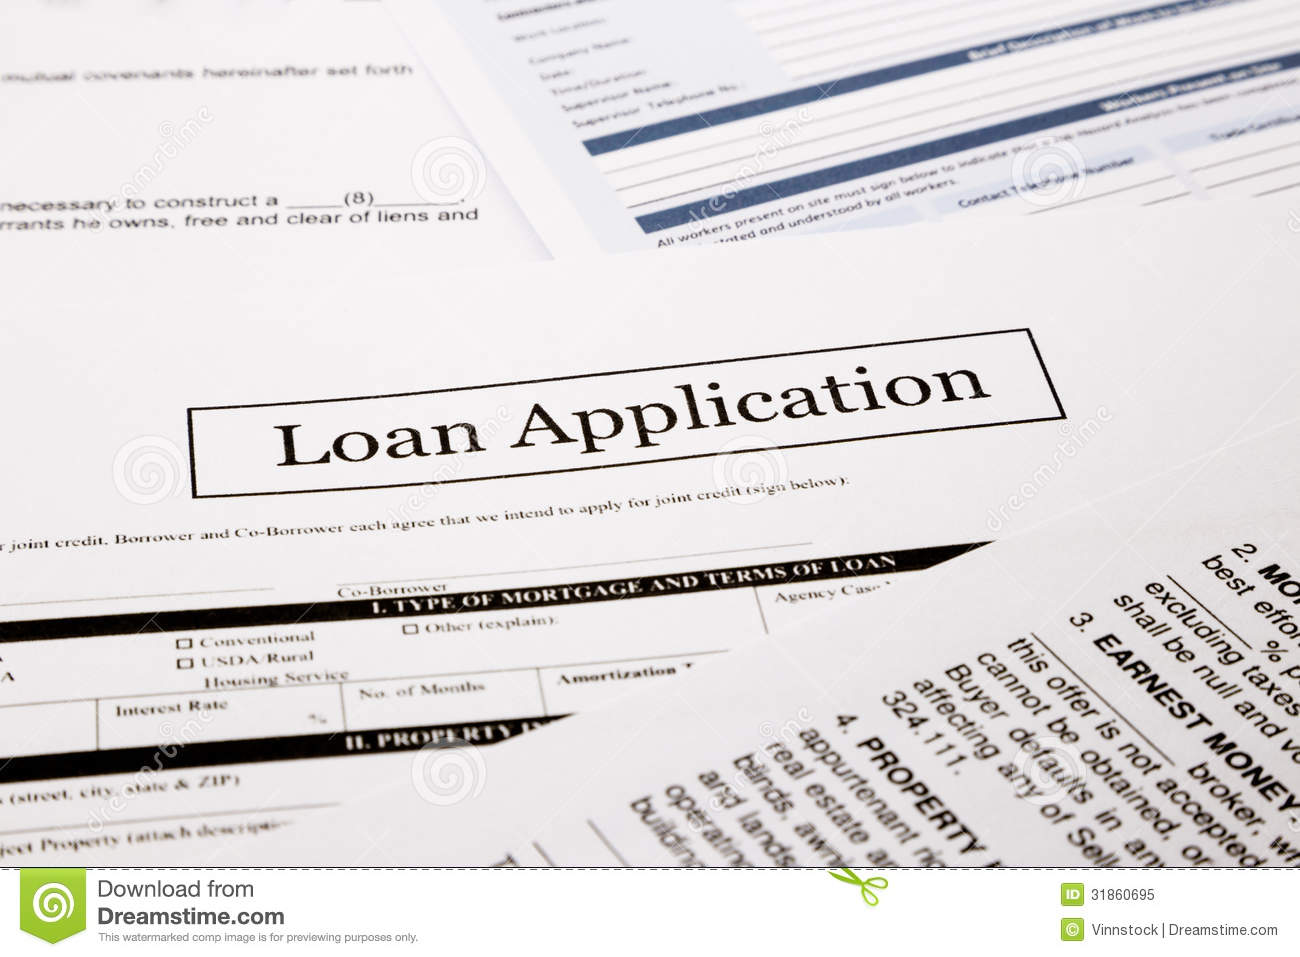 anz business loan application form